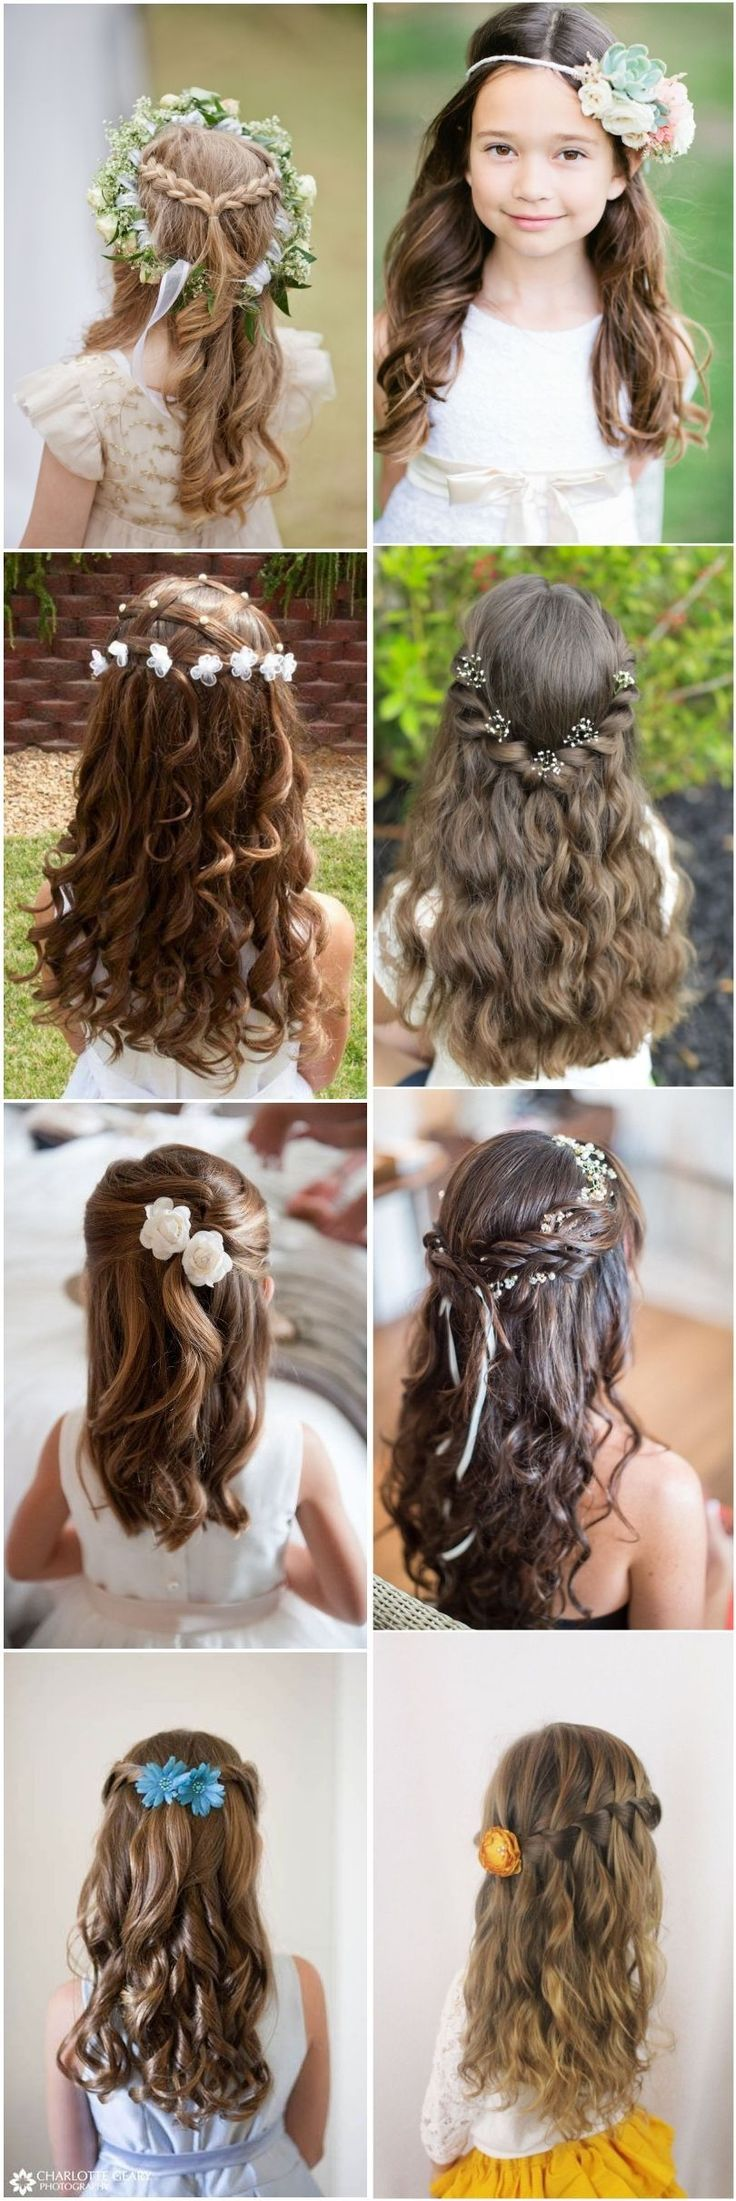 cute little girl hairstyles-updos, braids, waterfall / http://www.deerpearlflowers.com/super-cute-little-girl-hairstyles-for-wedding/ #girlhairstyleseasy